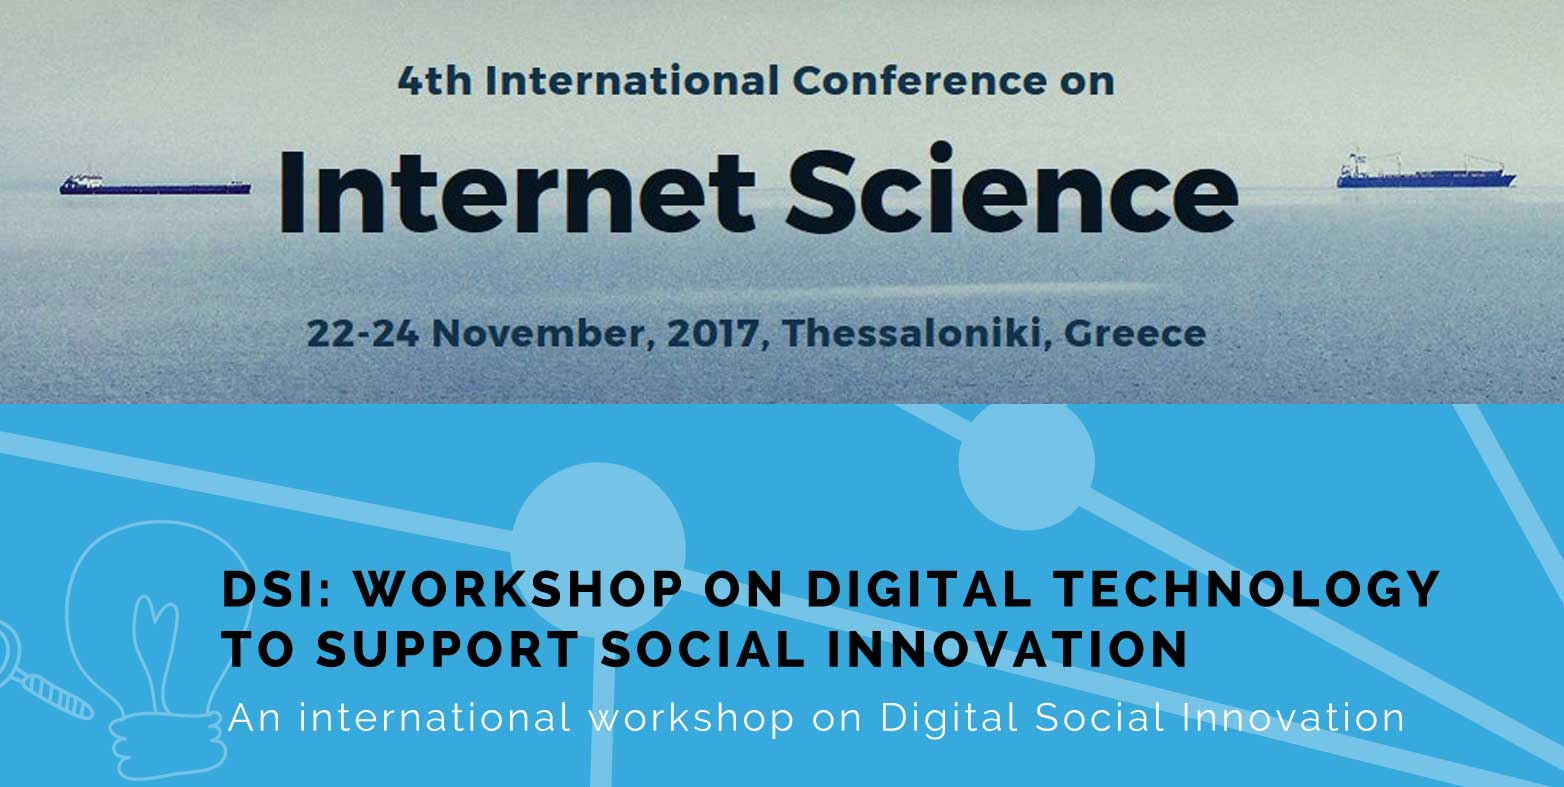 CAPS Workshop at the 4th International Conference on Internet Science: Digital Technology to support Social innovation